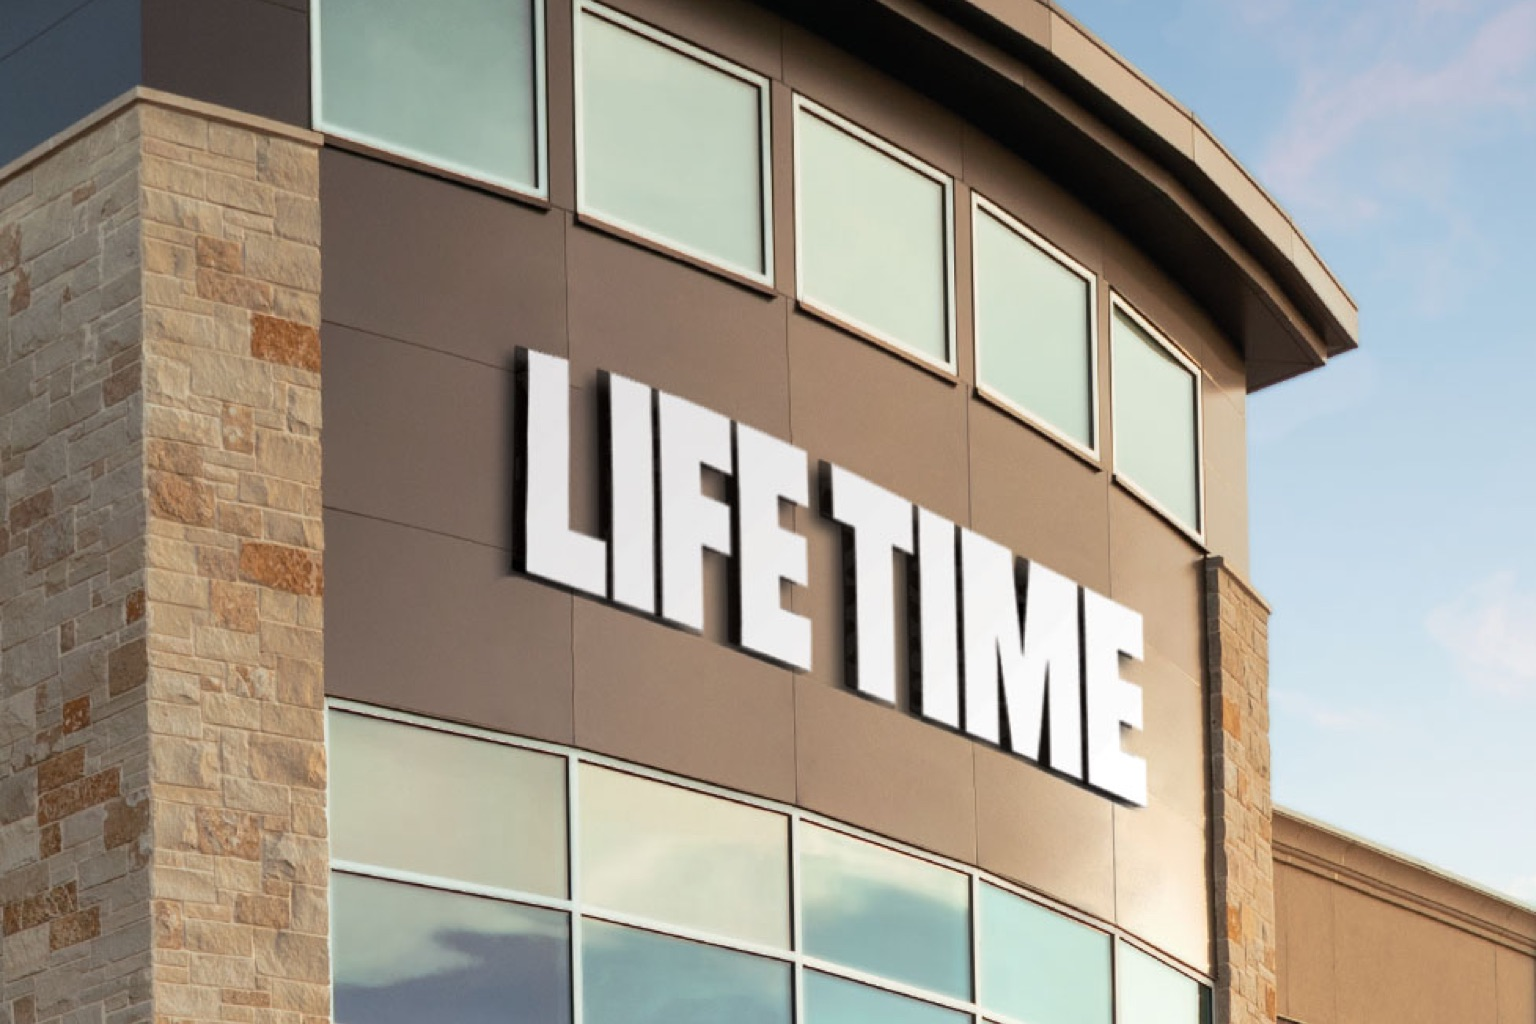 A close up view of the Life Time logo on the front of a Life Time building.